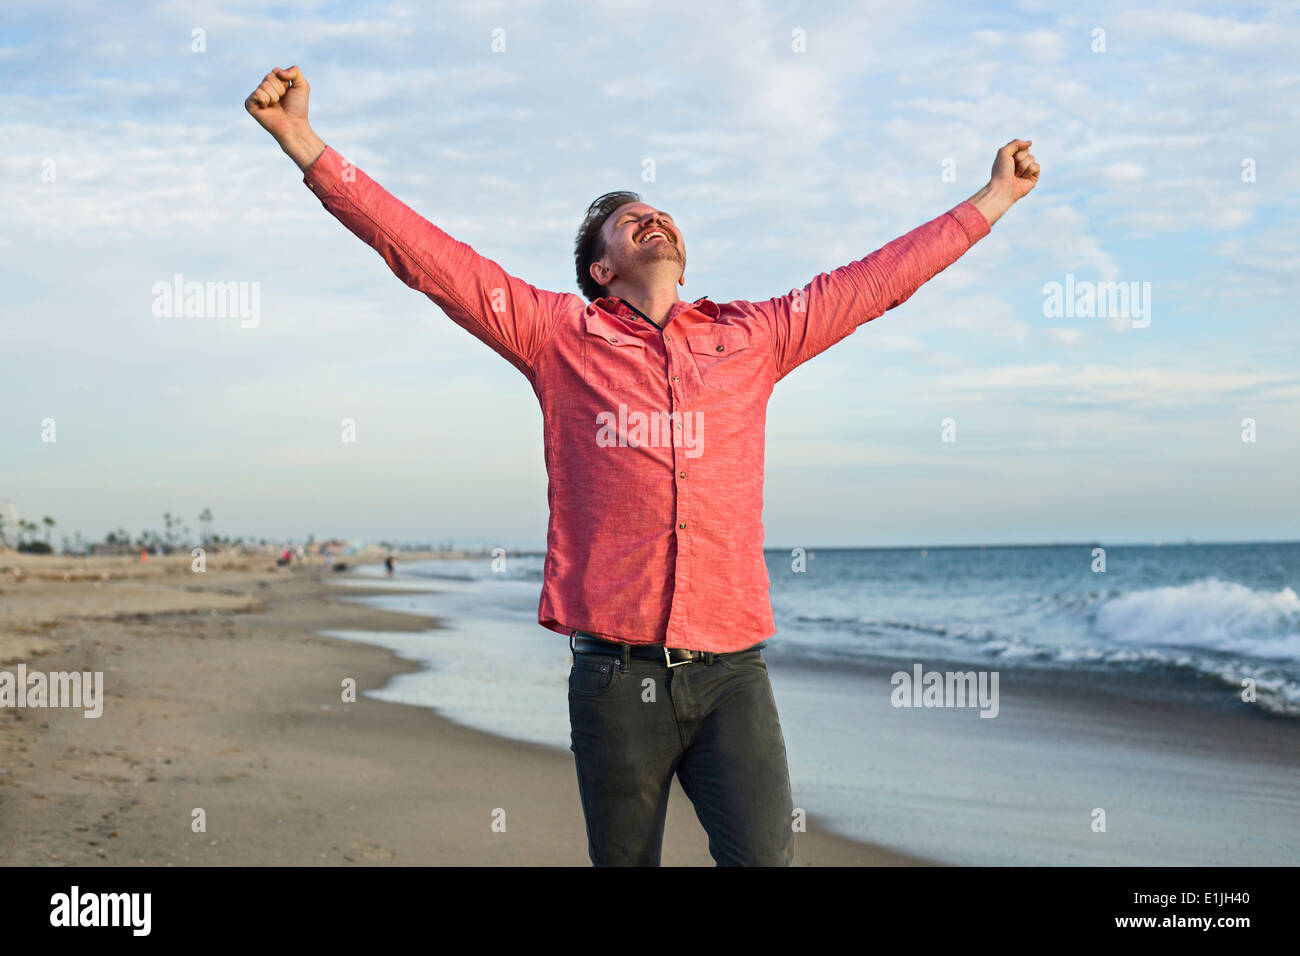 Young man celebrating on beach, Long Beach, California, USA - Stock Image